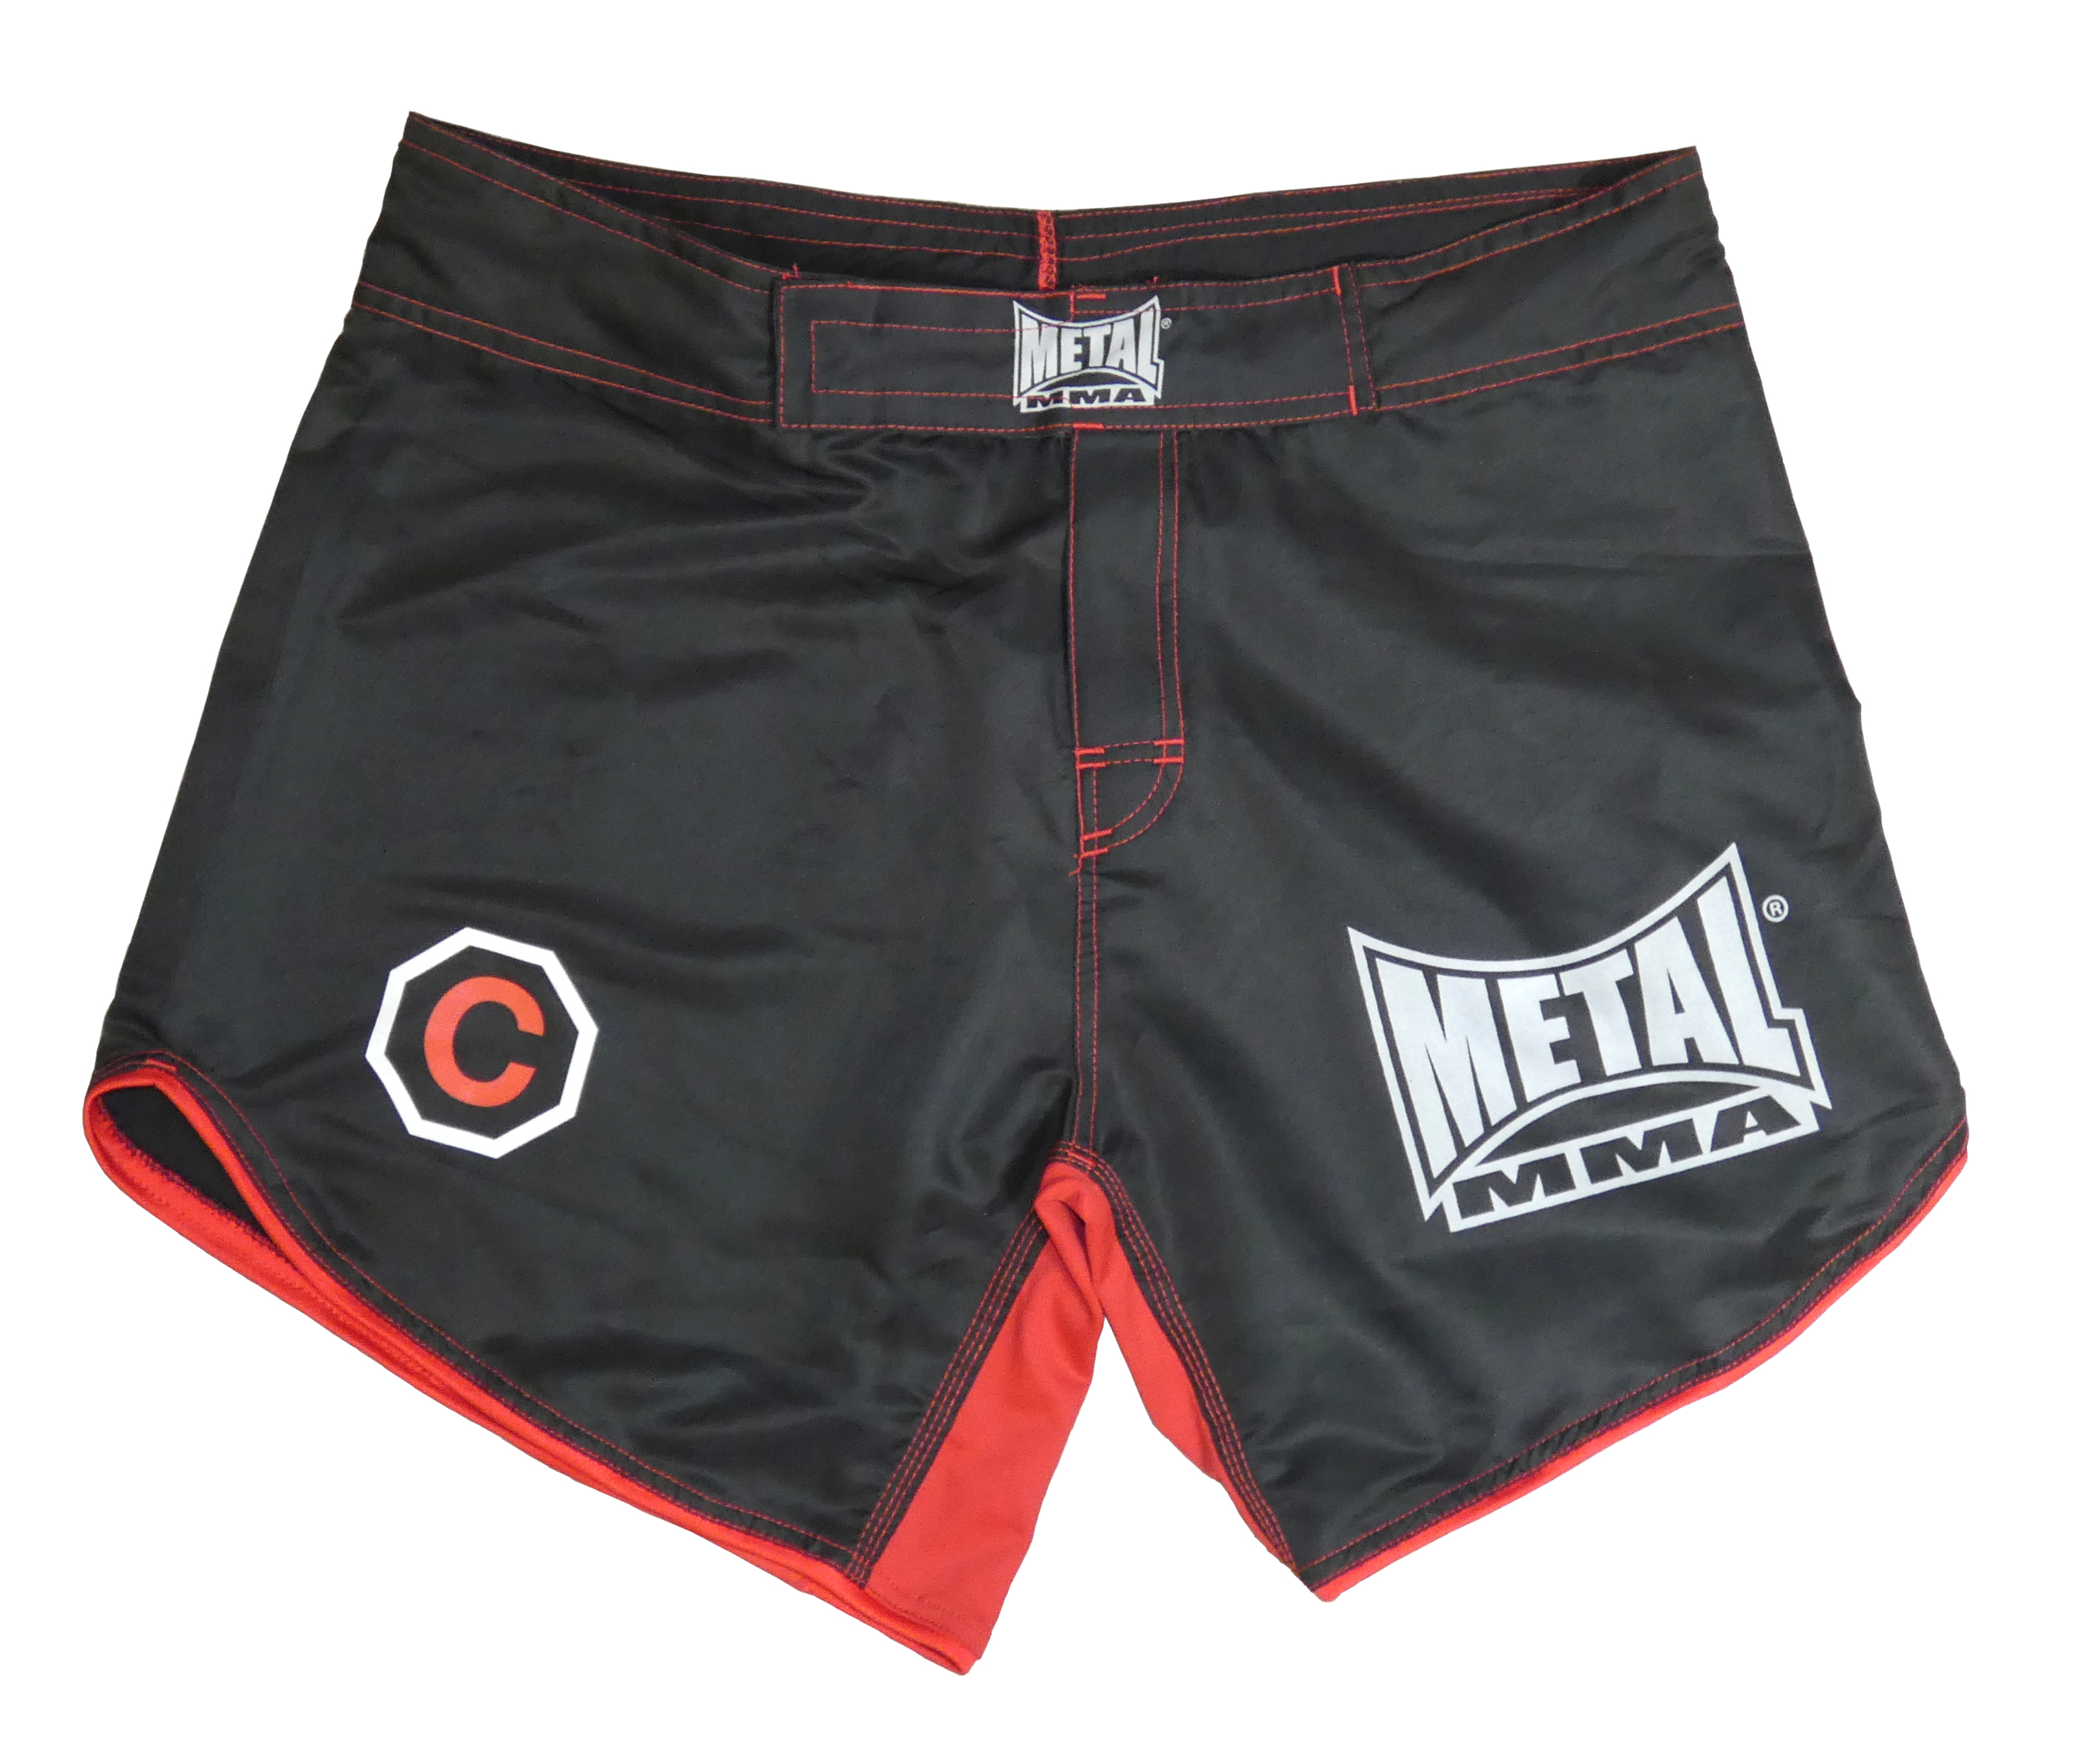 Short de MMA Métal boxe Courage